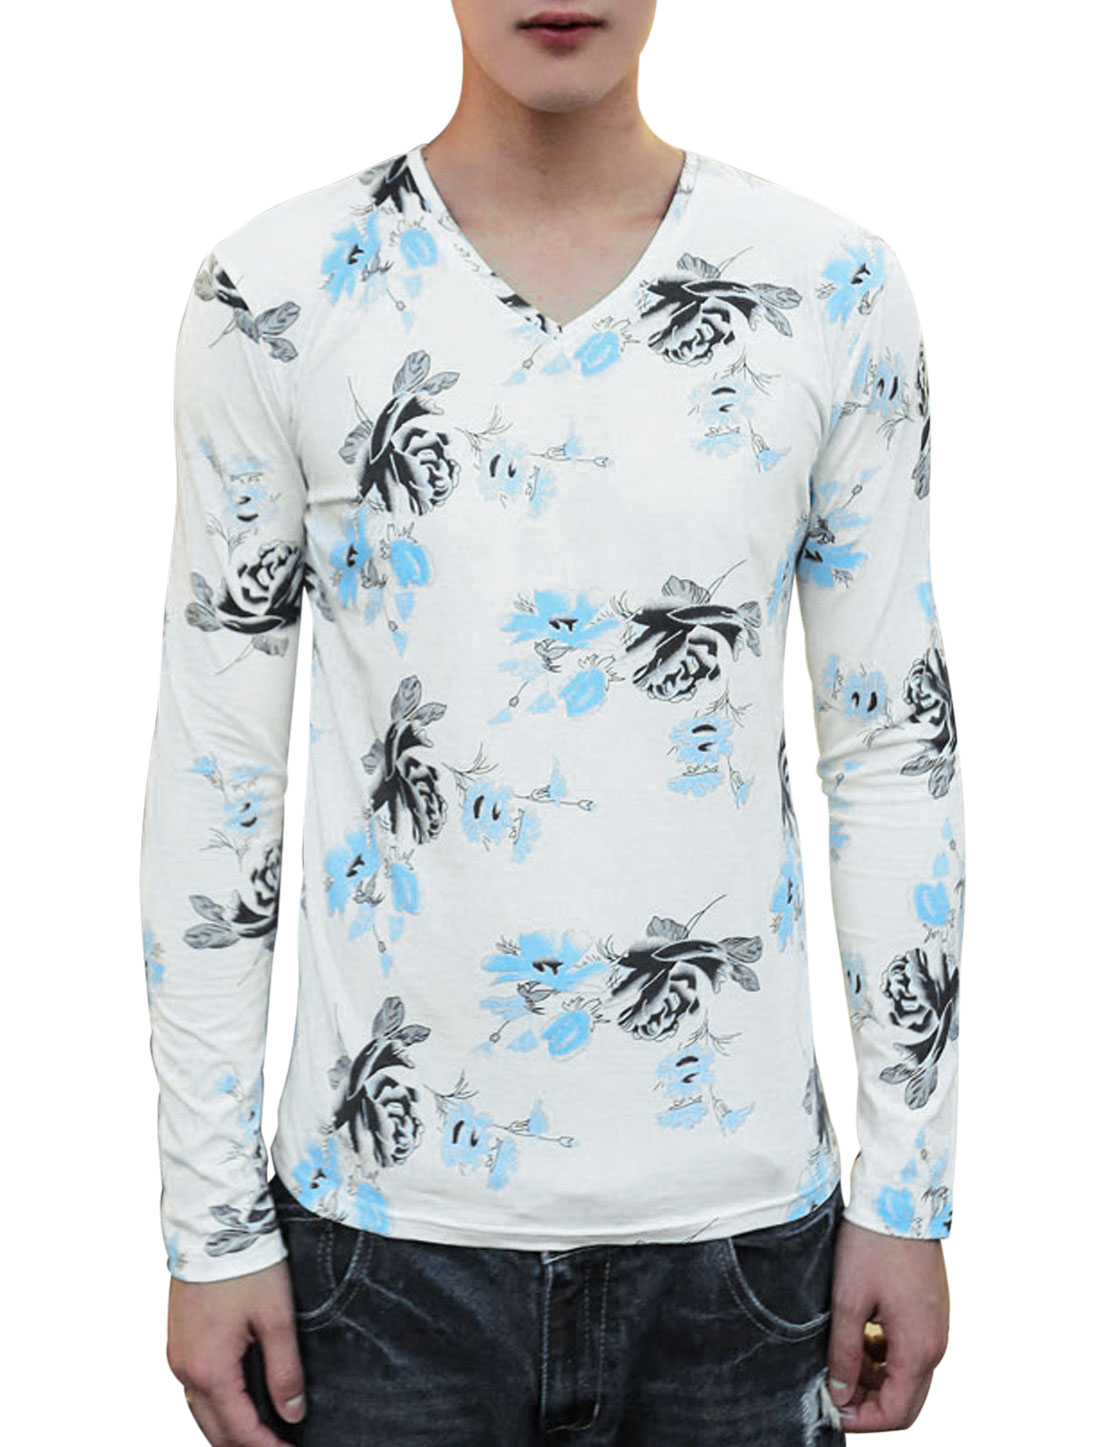 Allover Flower Prints Pullover Slim Fit Blue White Casual Shirt for Man S